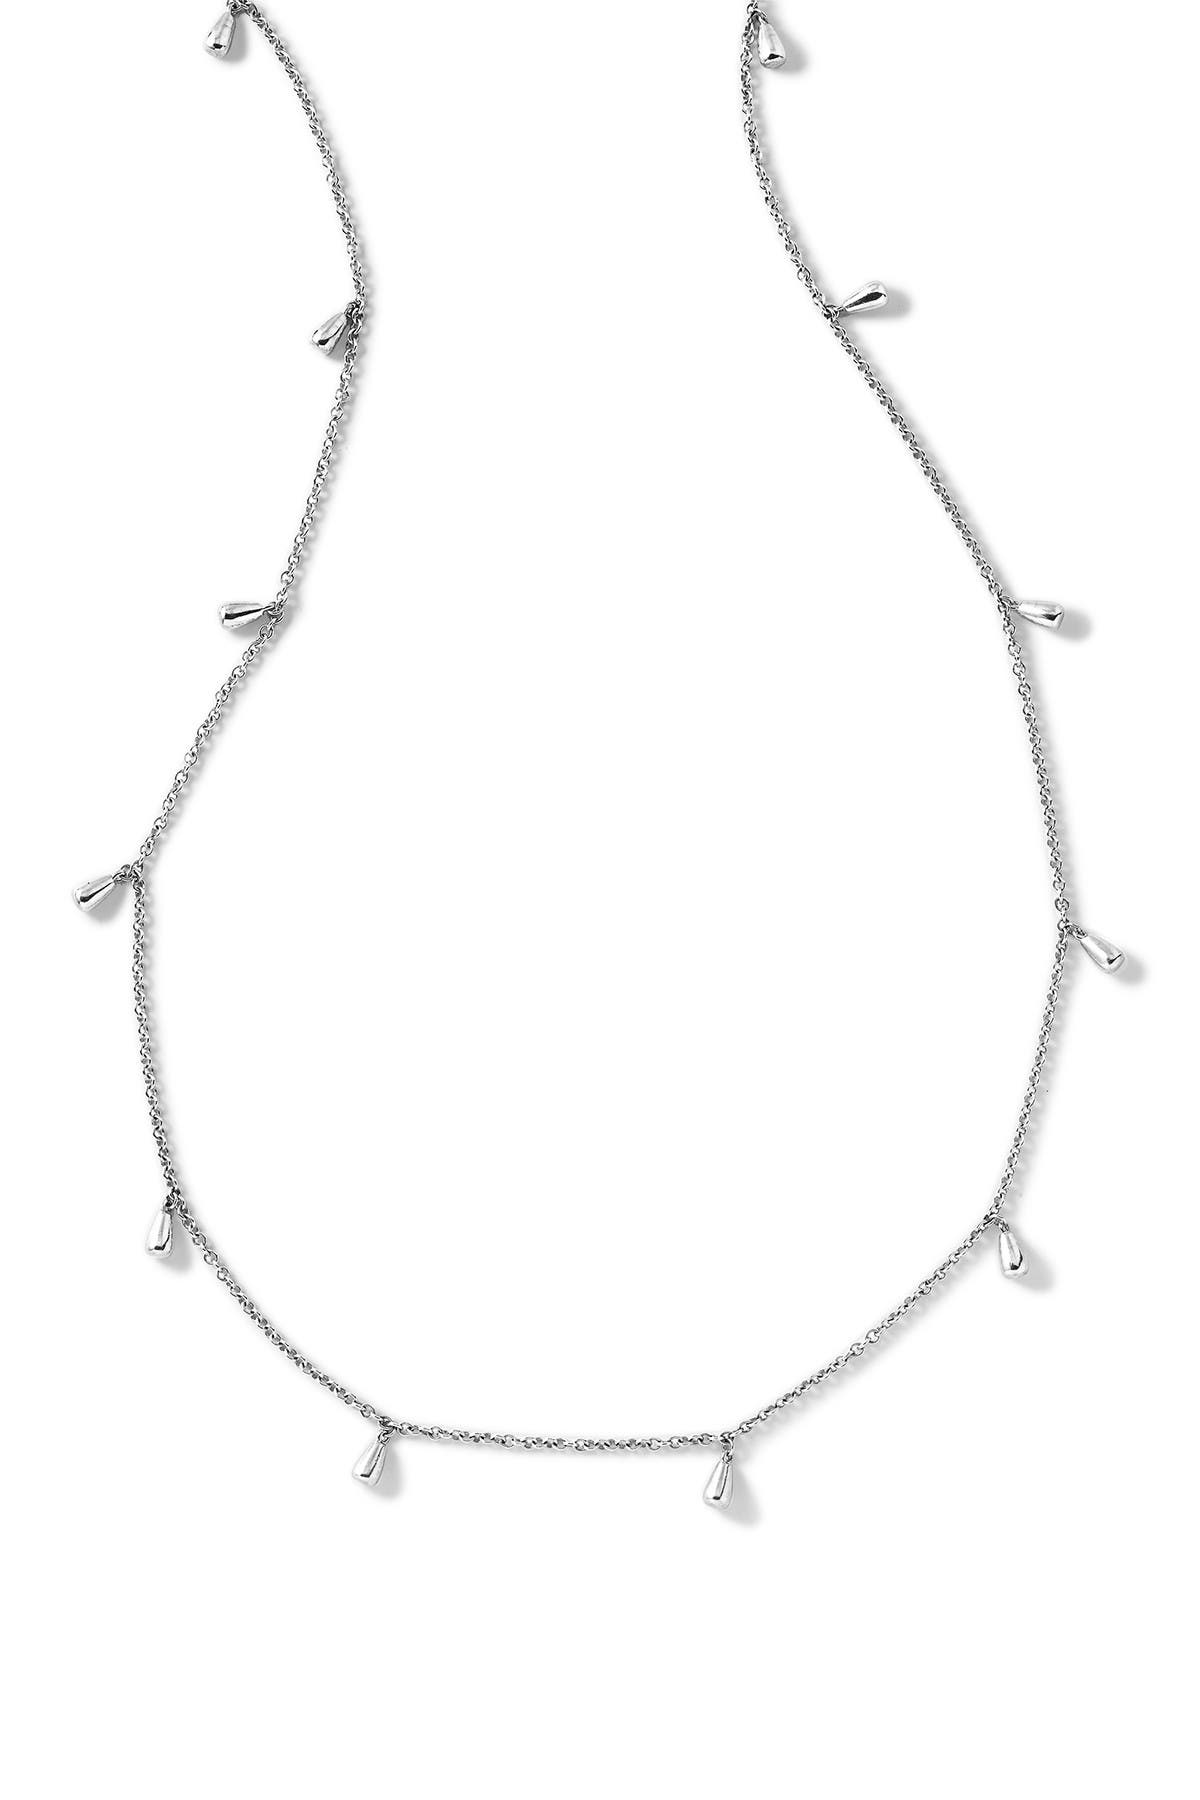 Image of Ippolita Sterling Silver Classico Long Rose Petal Necklace